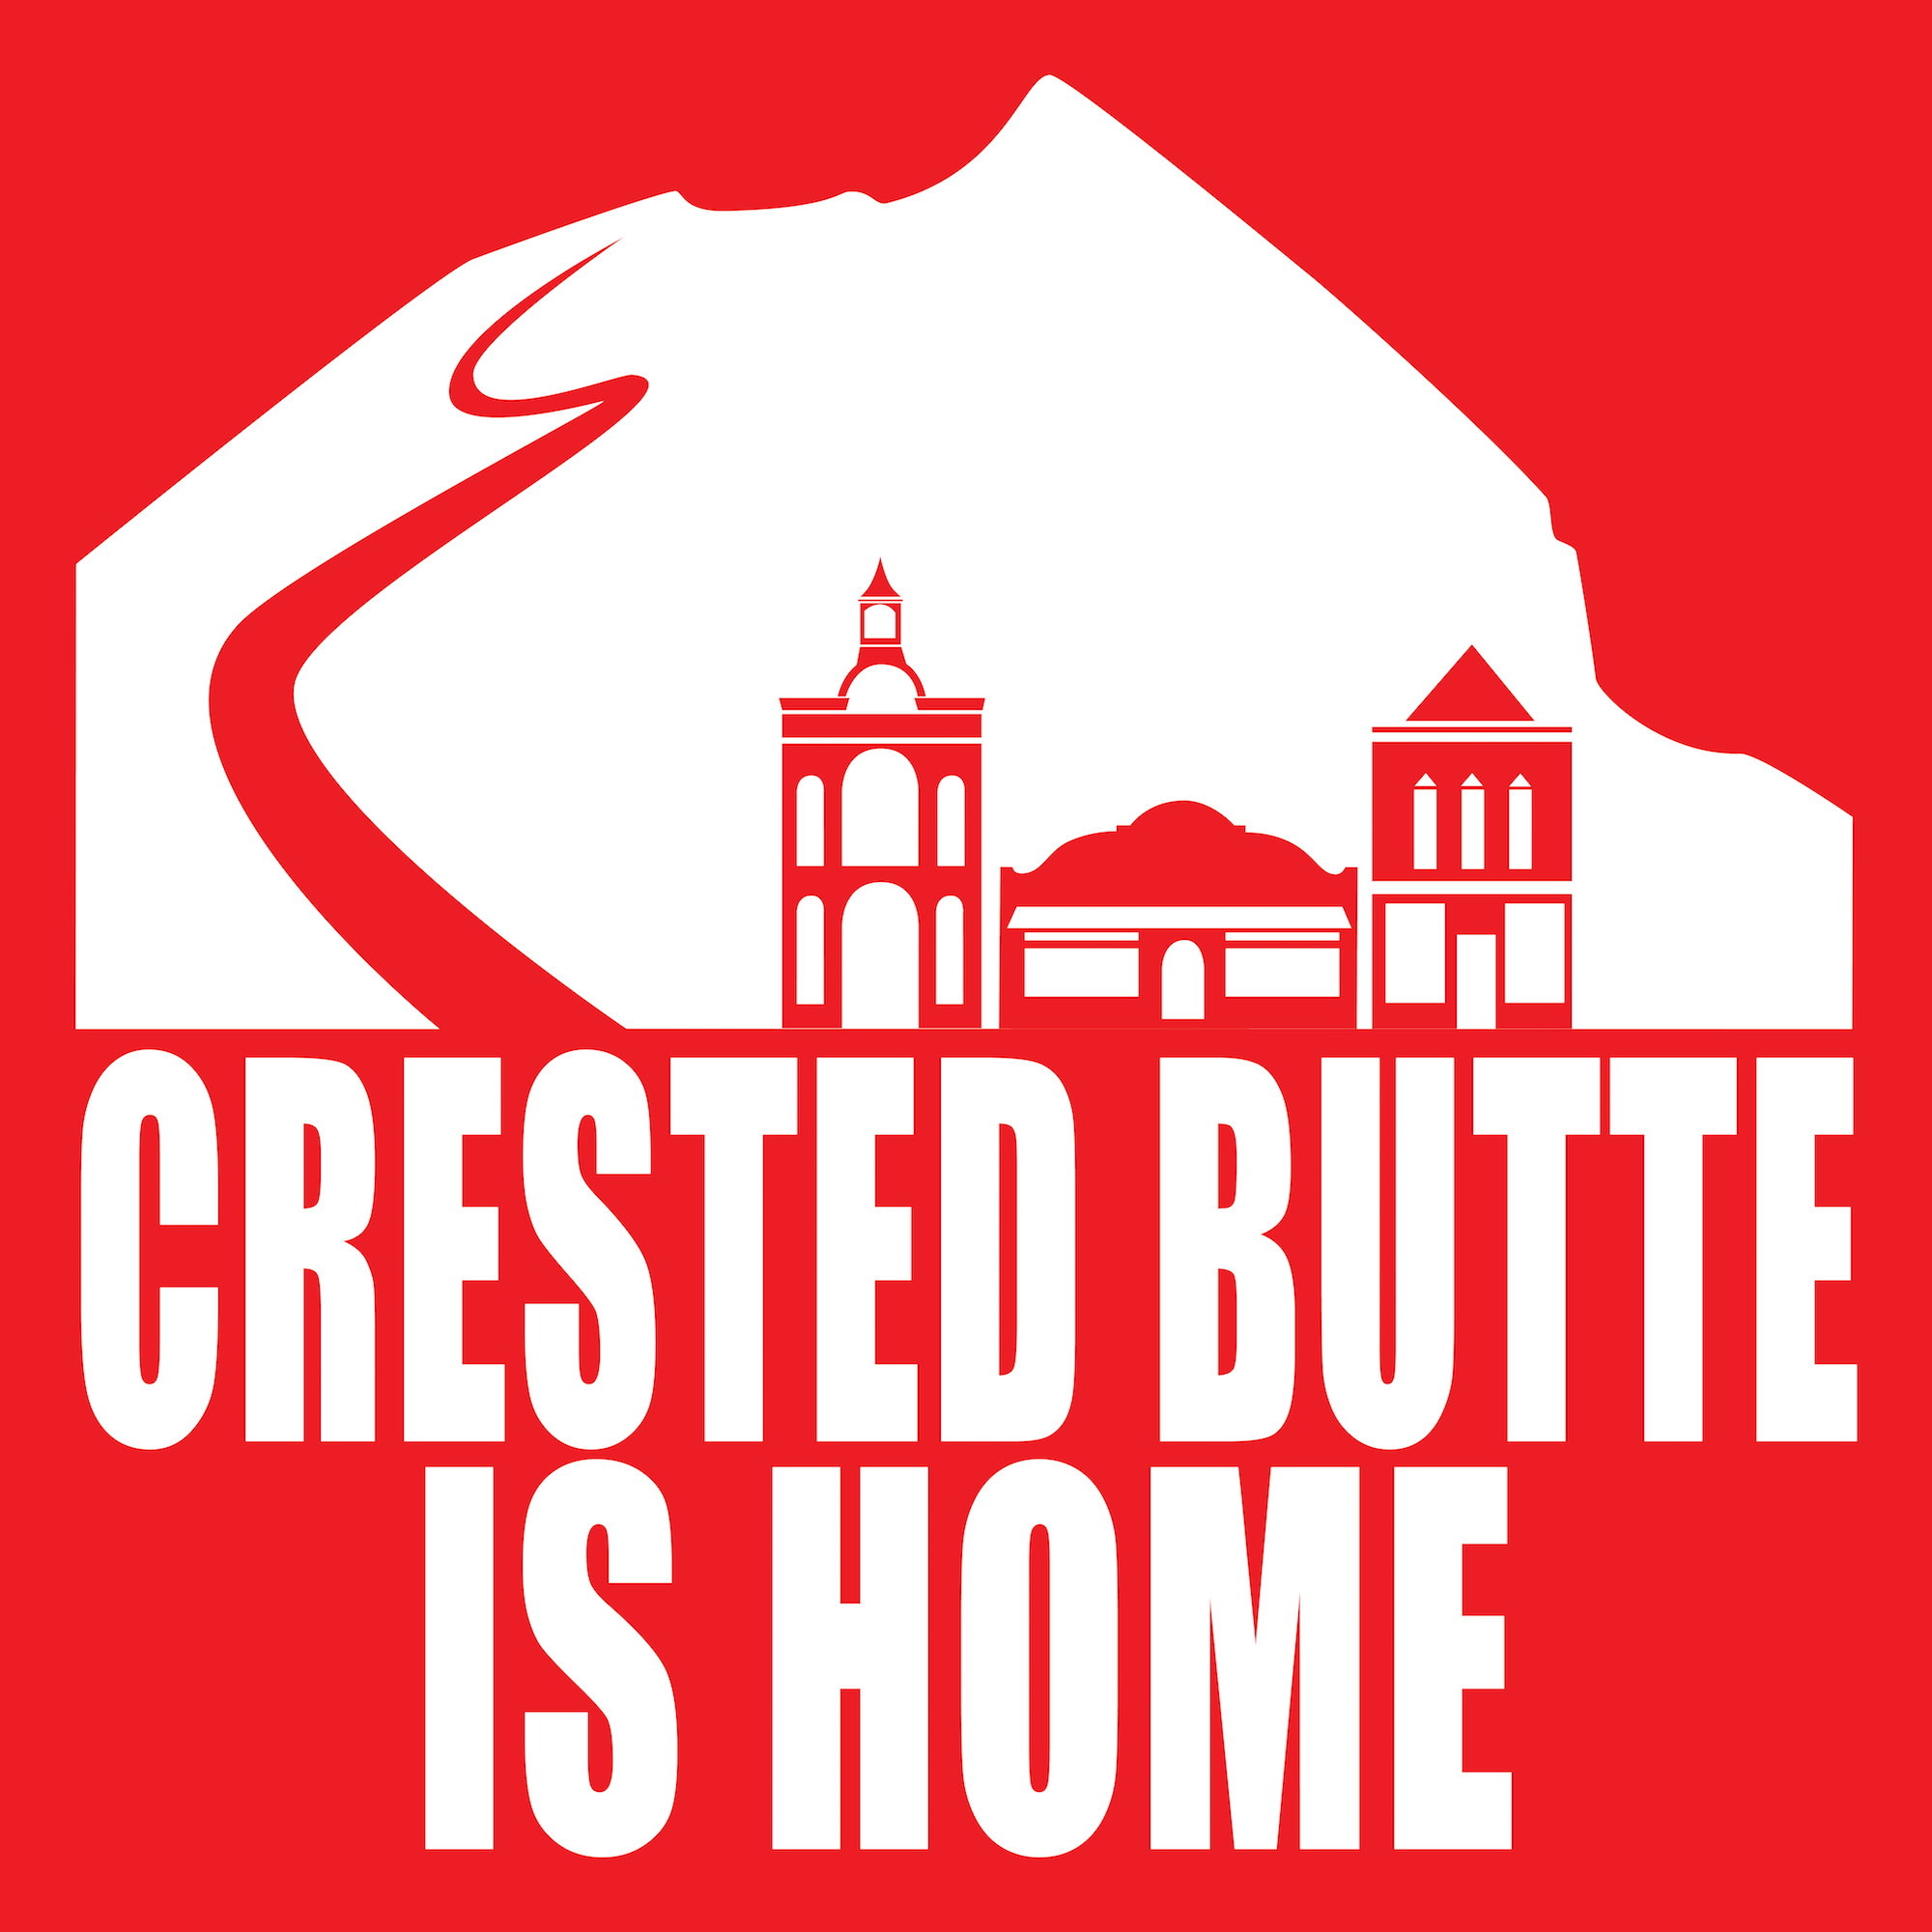 Crested Butte Is Home